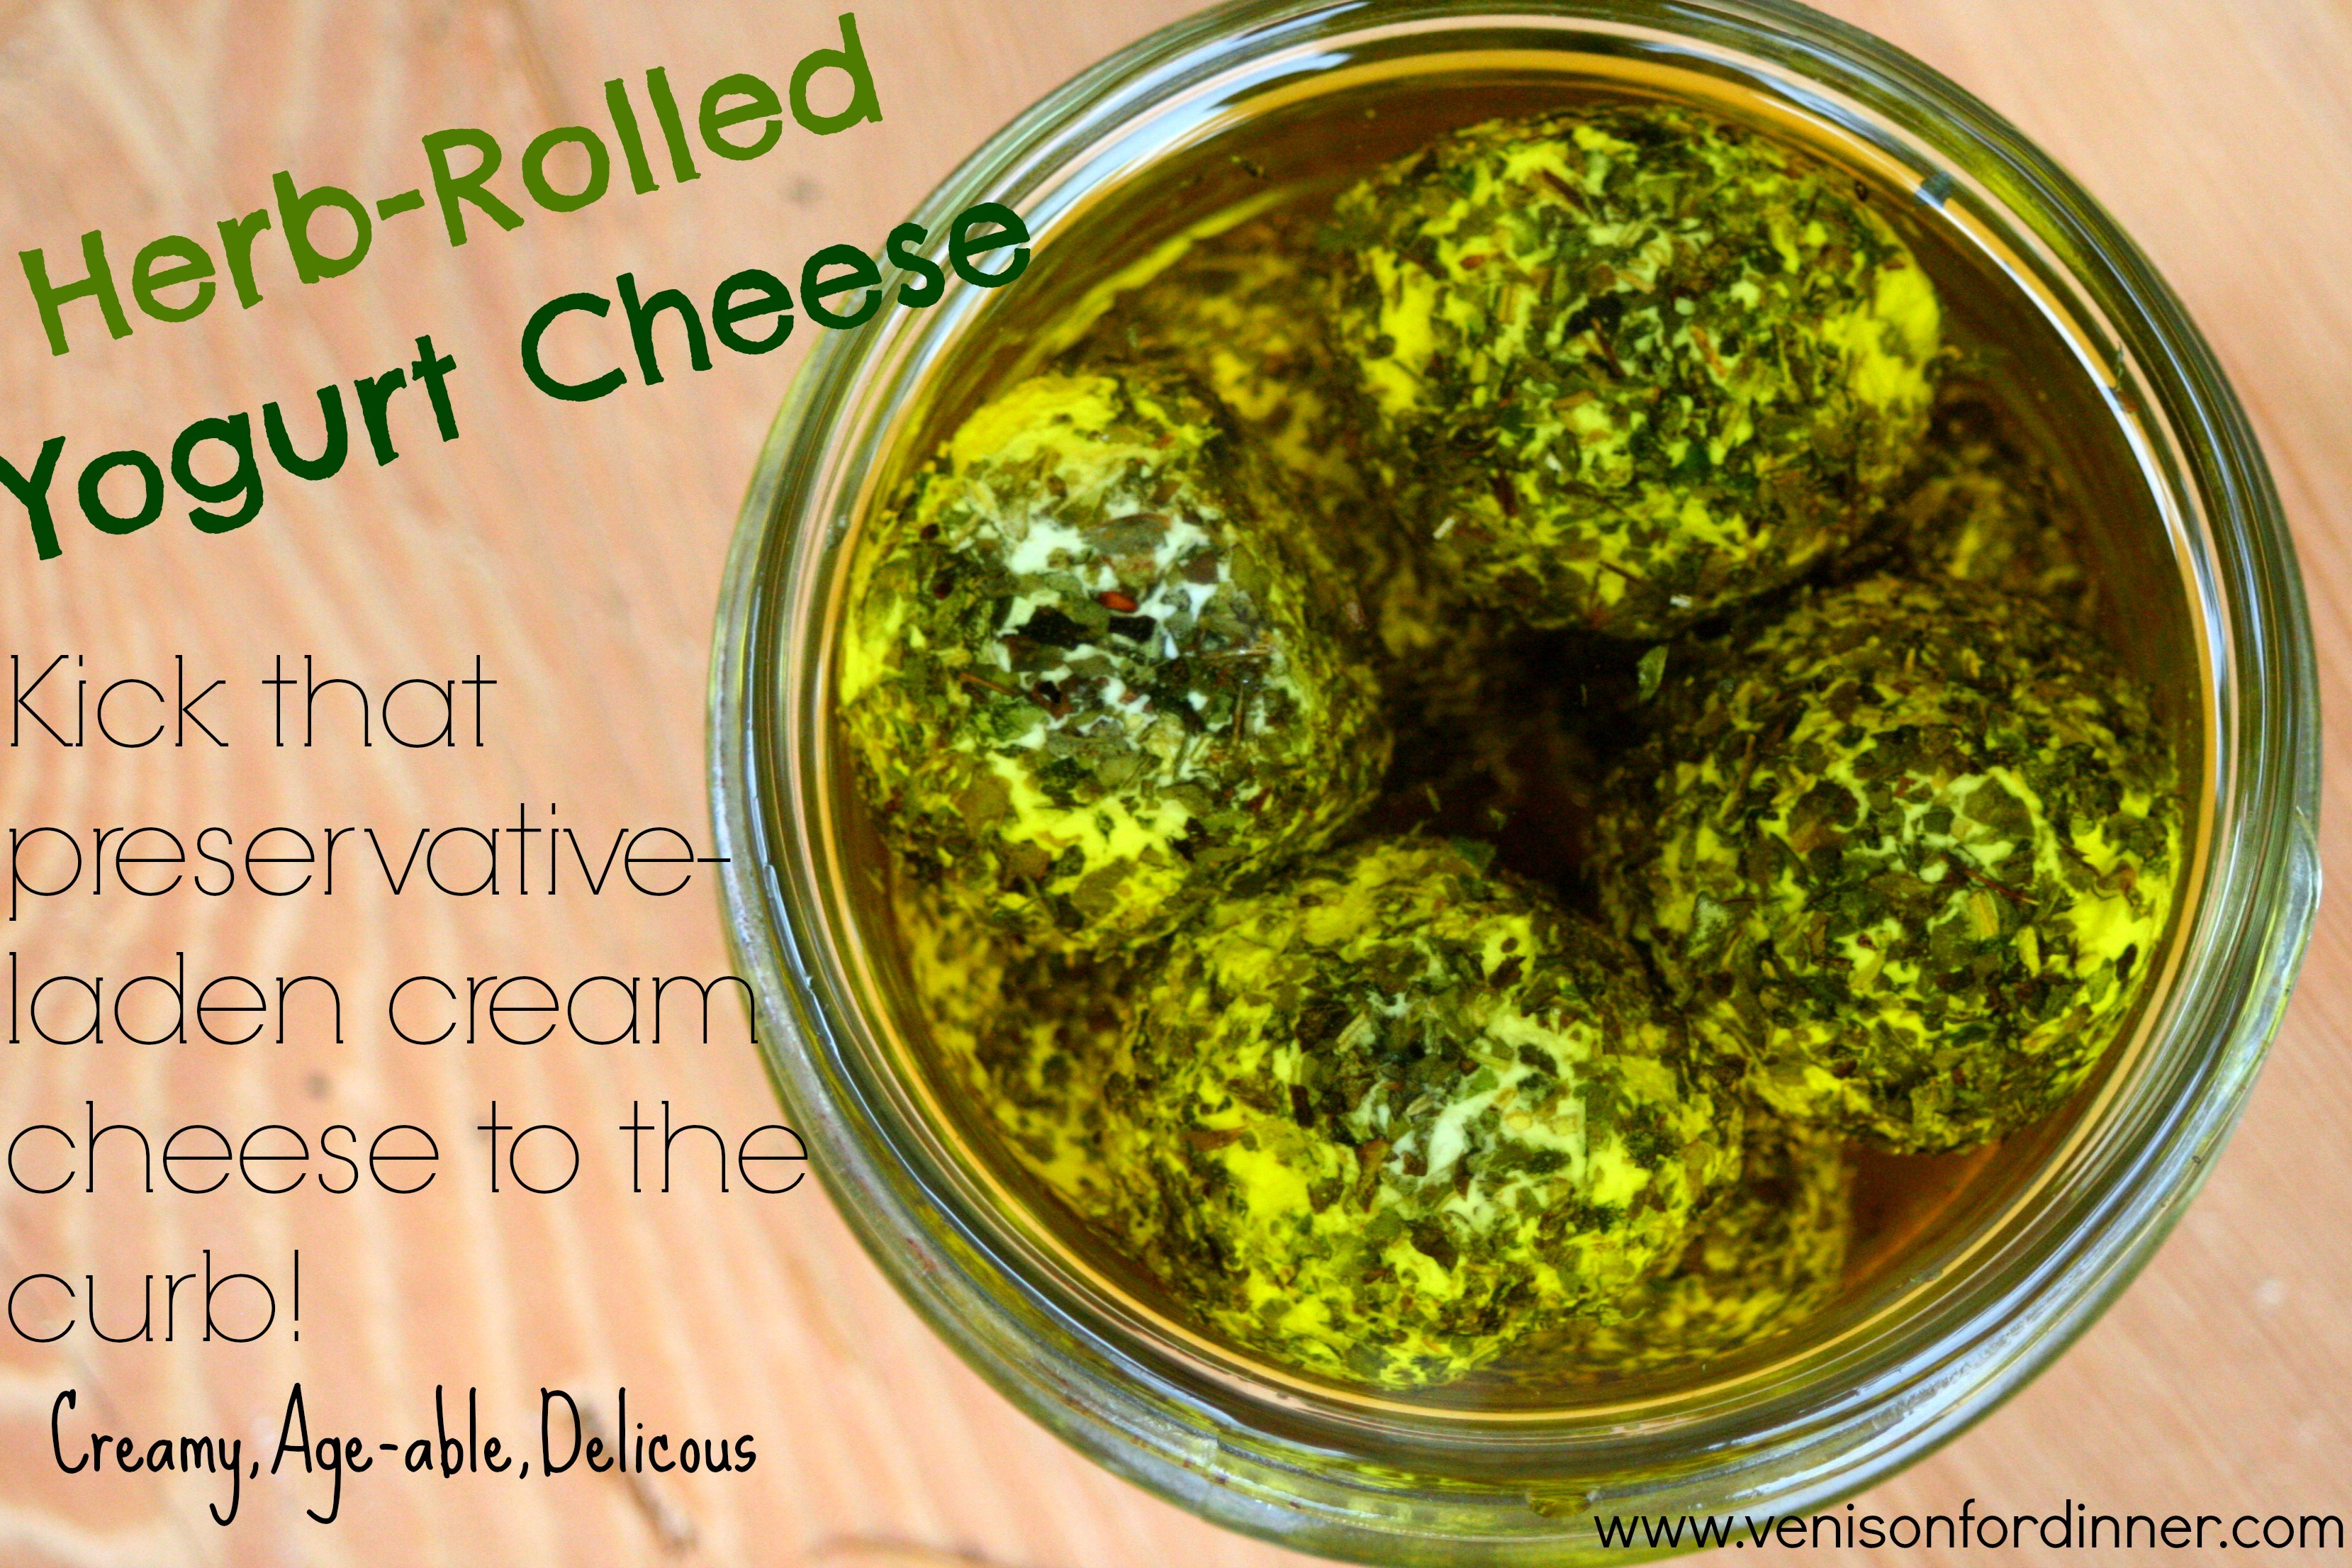 Herb Rolled Yogurt Cheese